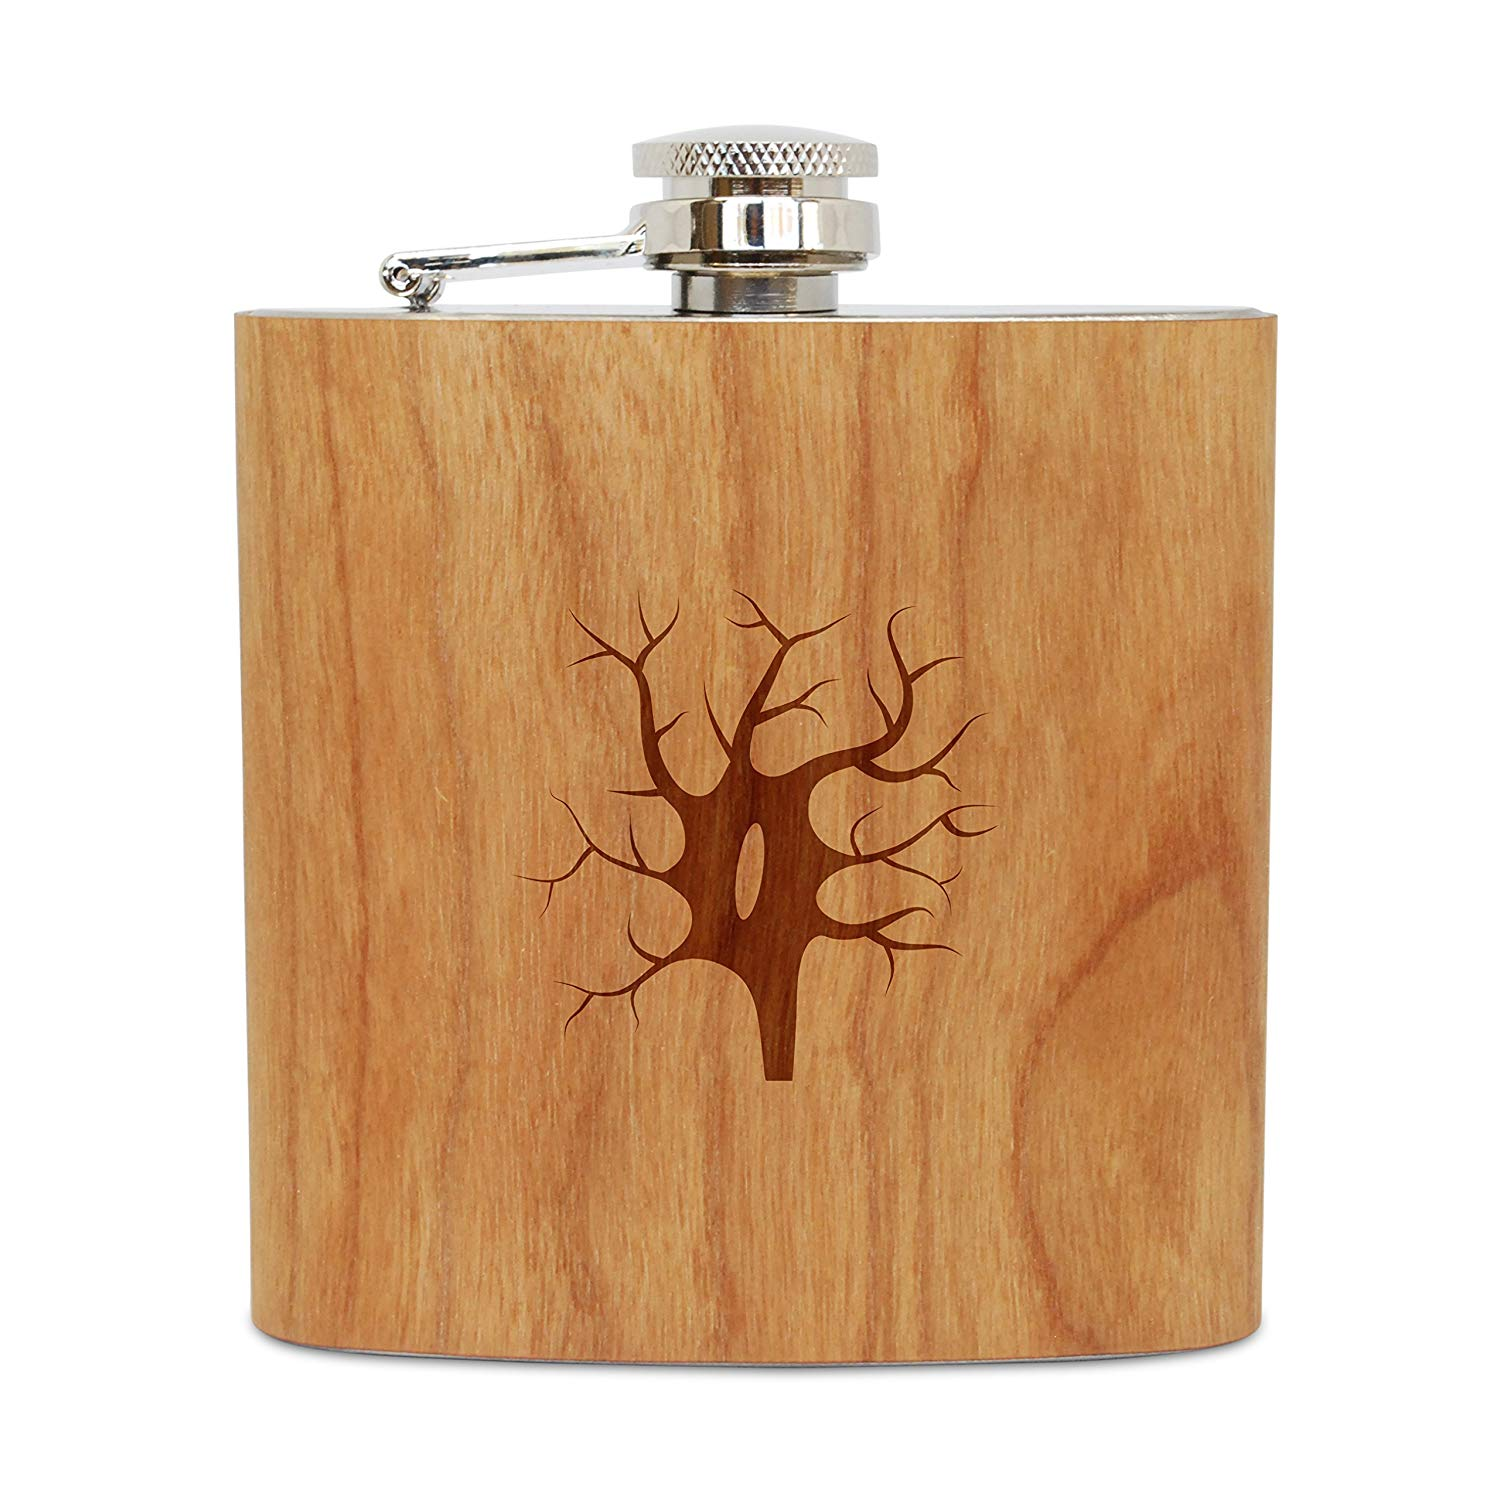 WOODEN ACCESSORIES COMPANY Cherry Wood Flask With Stainless Steel Body - Laser Engraved Flask With Spindle Neuron Design - 6 Oz Wood Hip Flask Handmade In USA